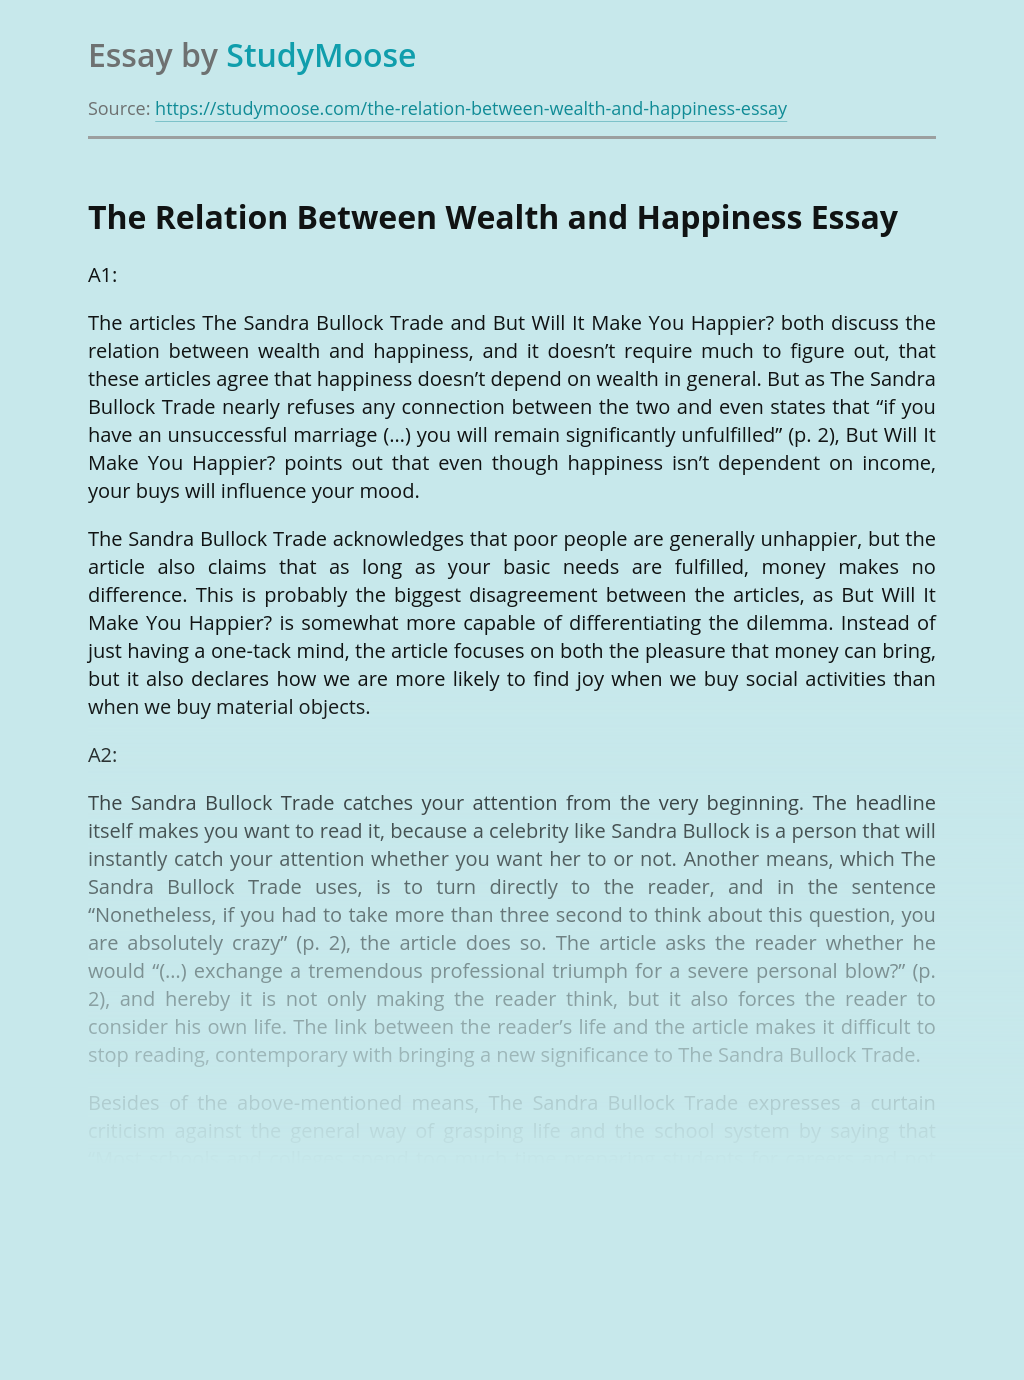 The Relation Between Wealth and Happiness